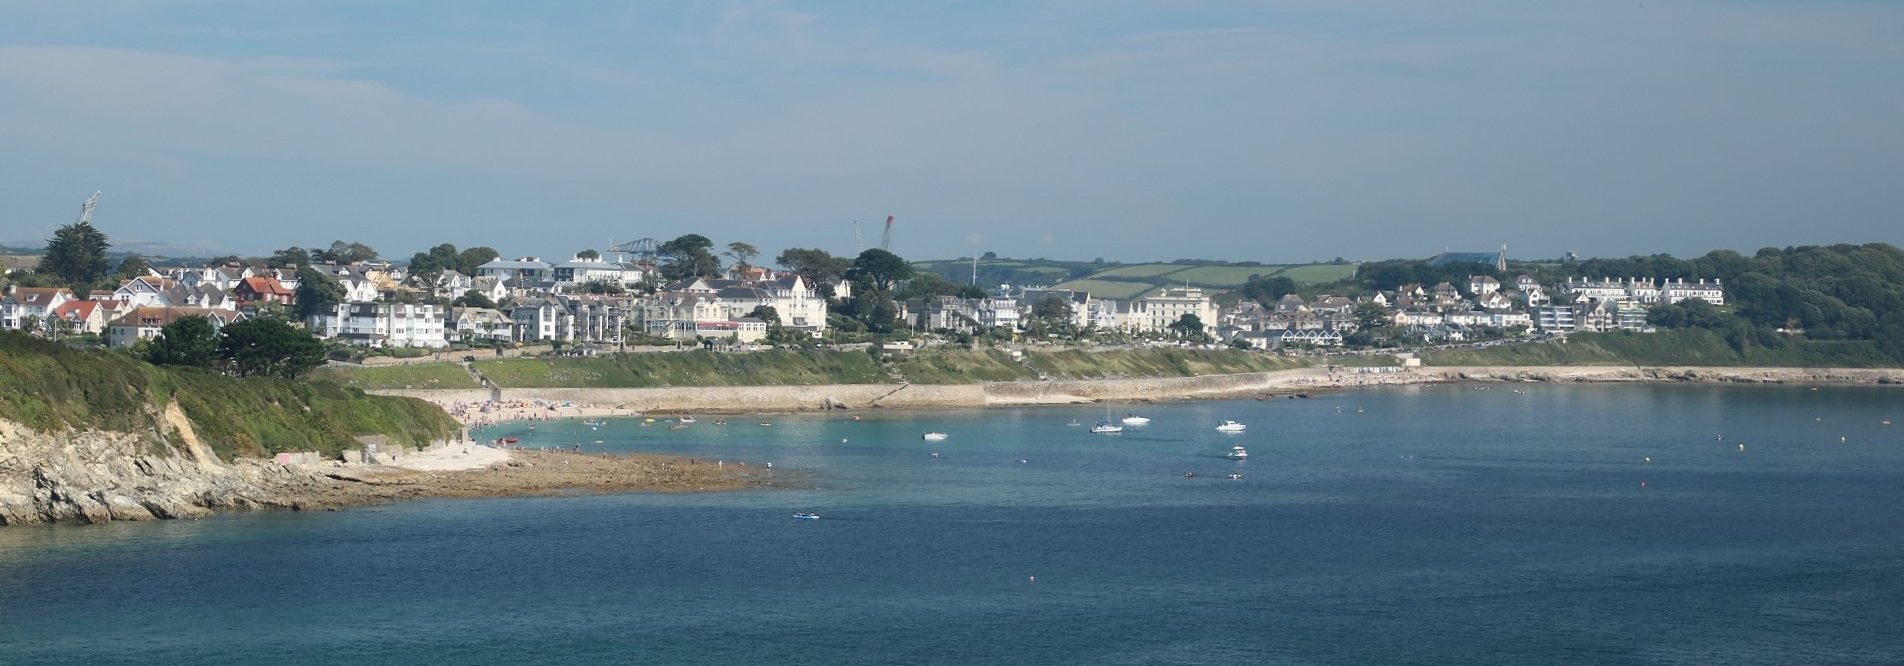 Bed and Breakfast in Falmouth